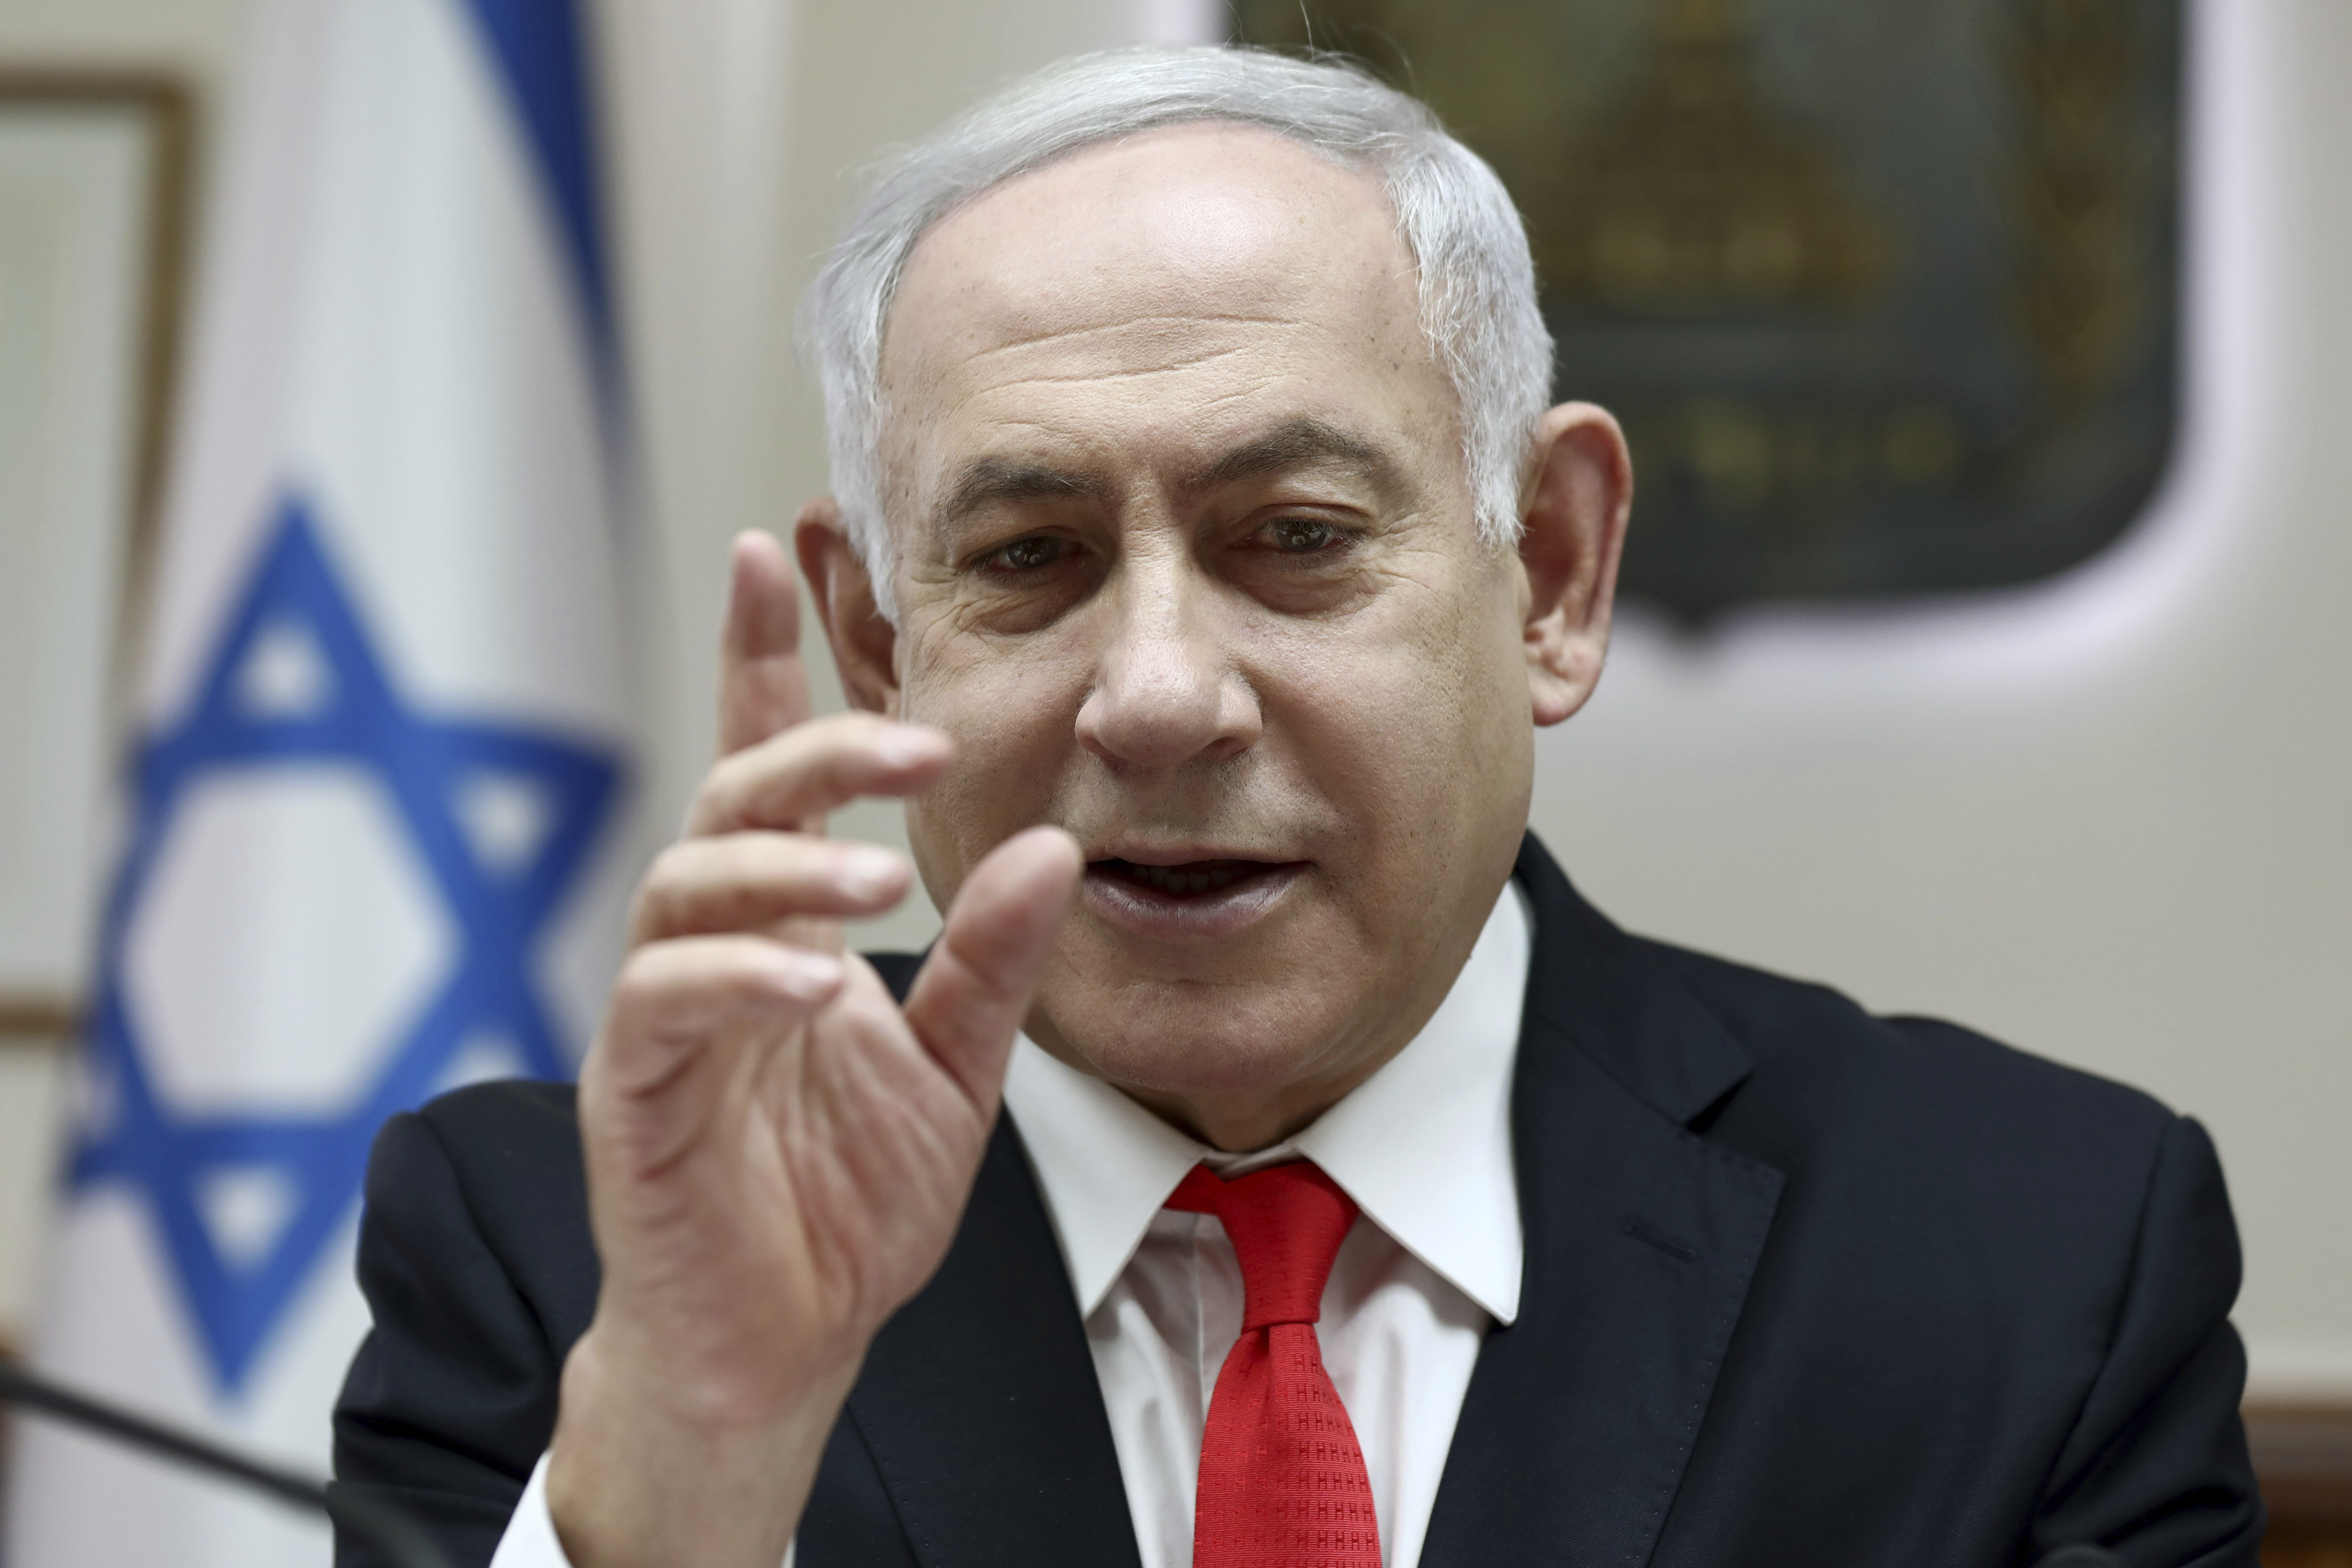 Israeli Prime Minister Benjamin Netanyahu reacts during the weekly cabinet meeting, at his office in Jerusalem, Israel on Dec. 15, 2019.